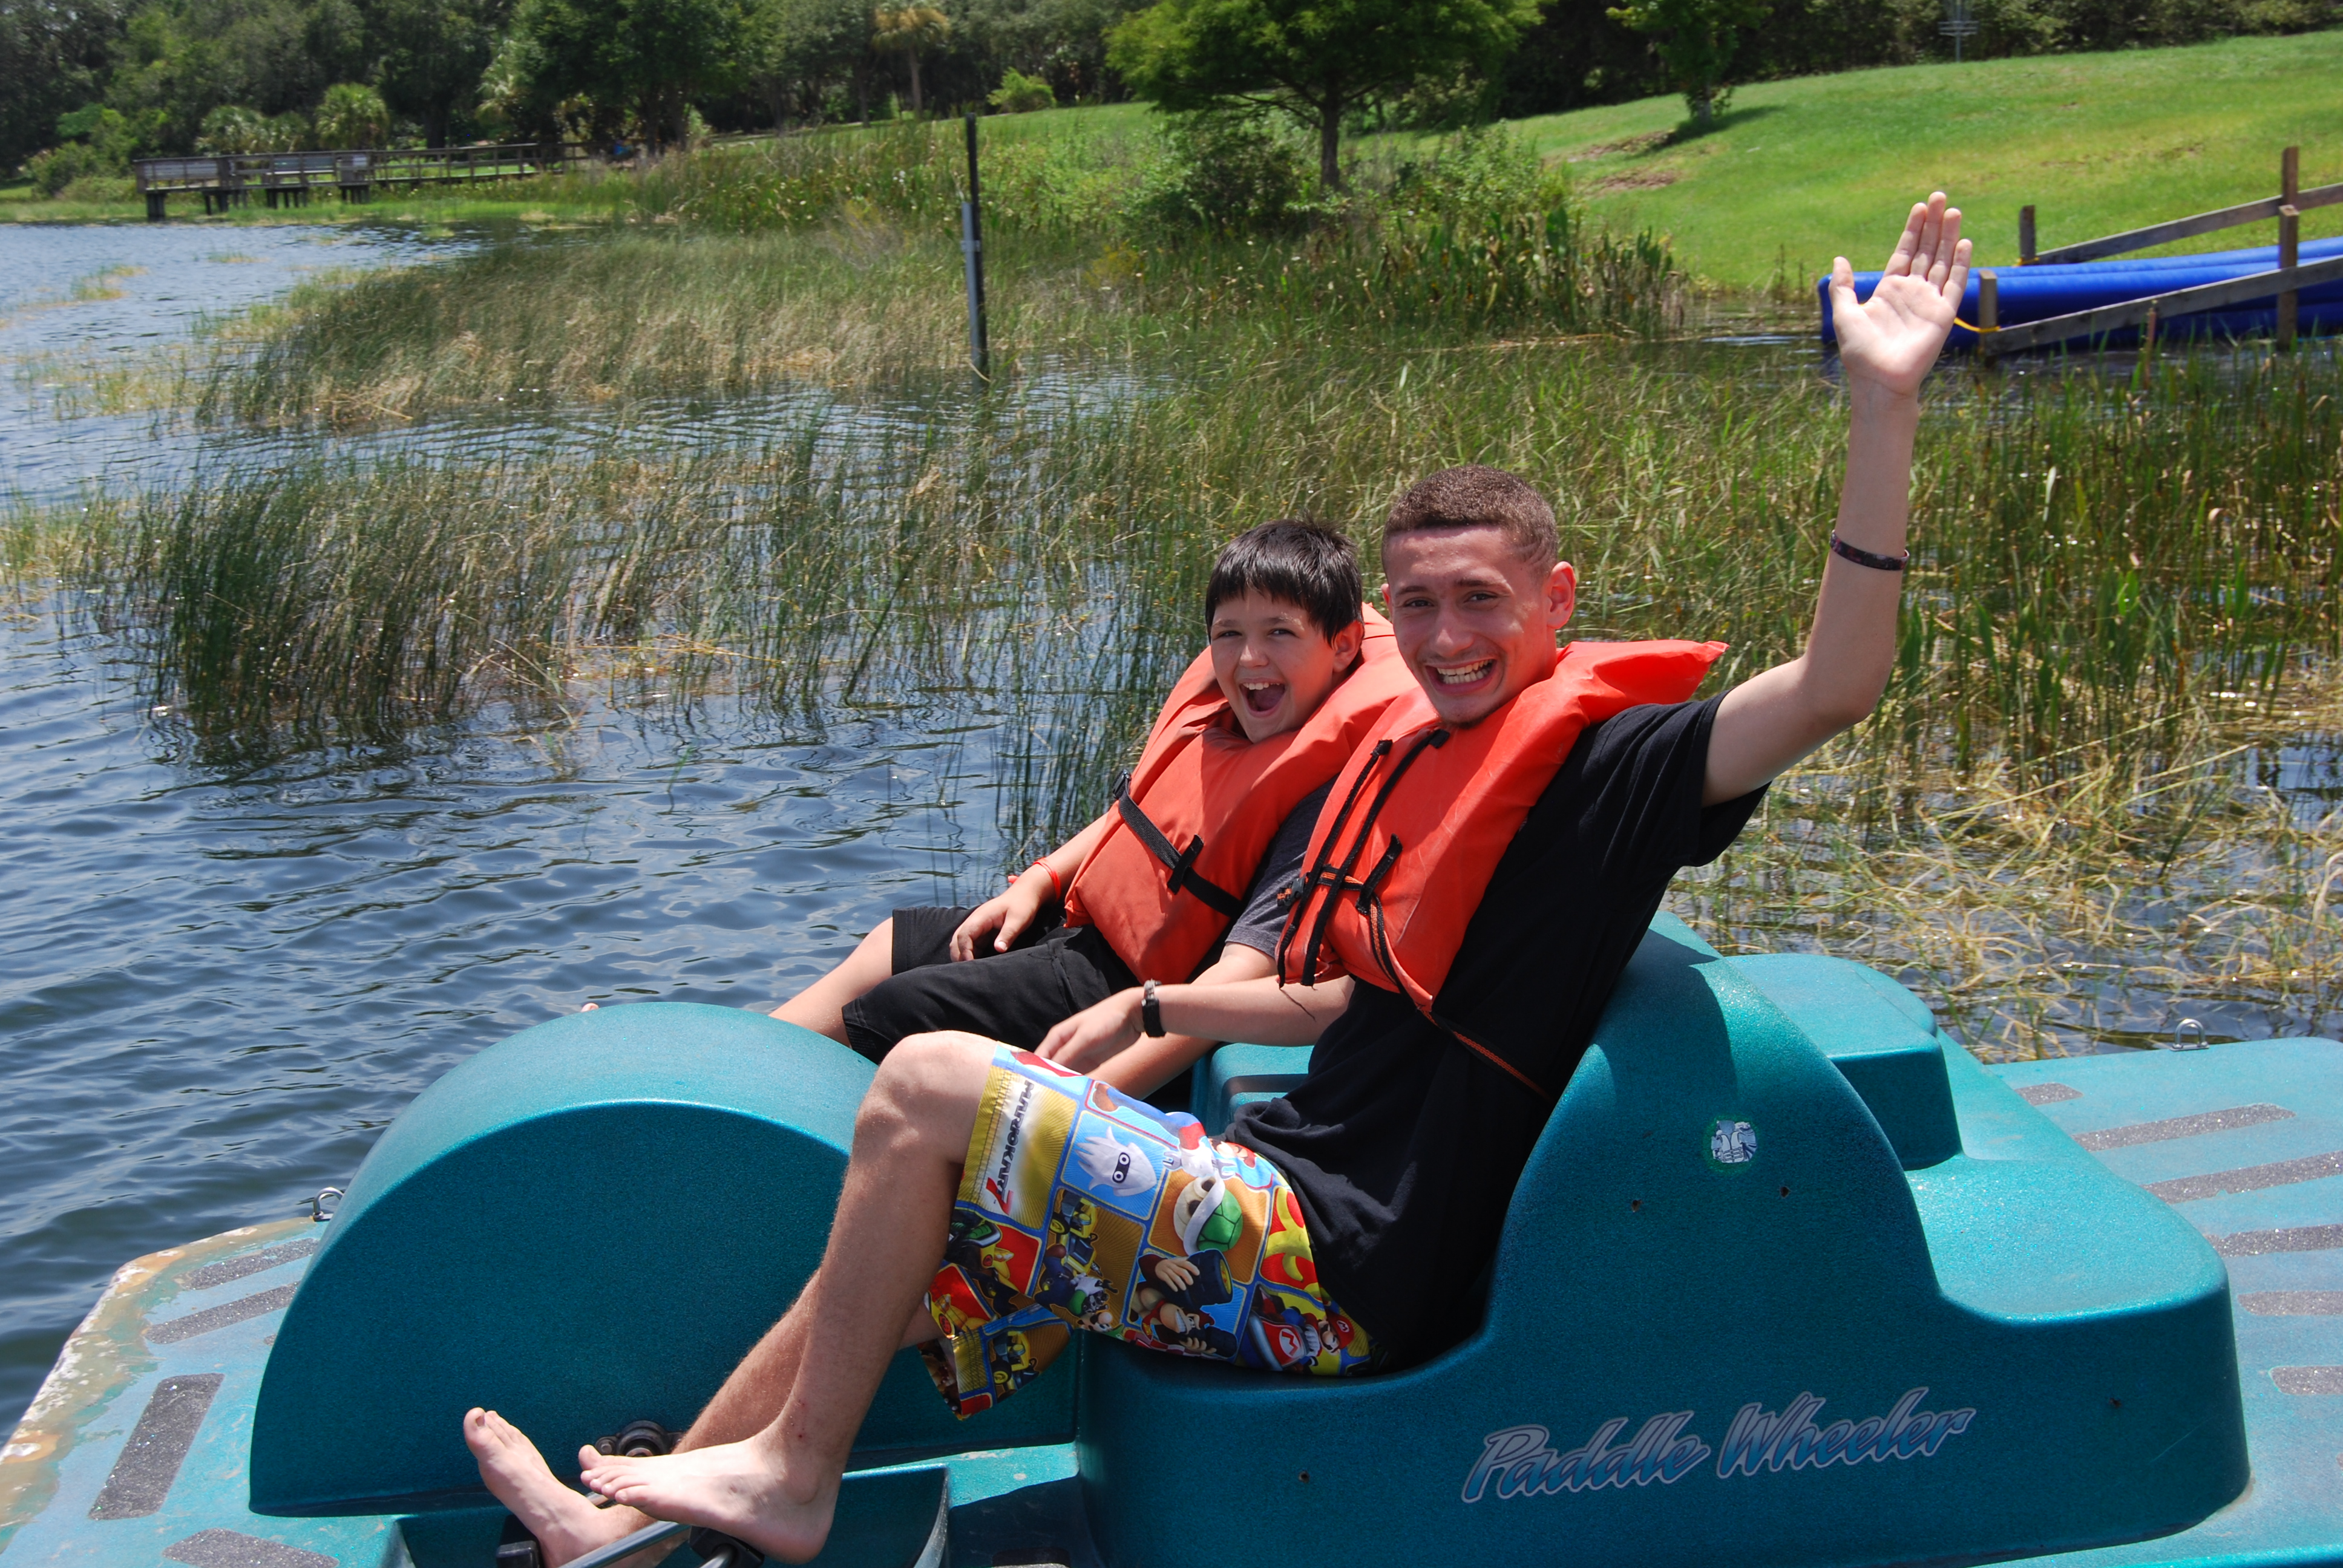 Two campers enjoy a paddle boat